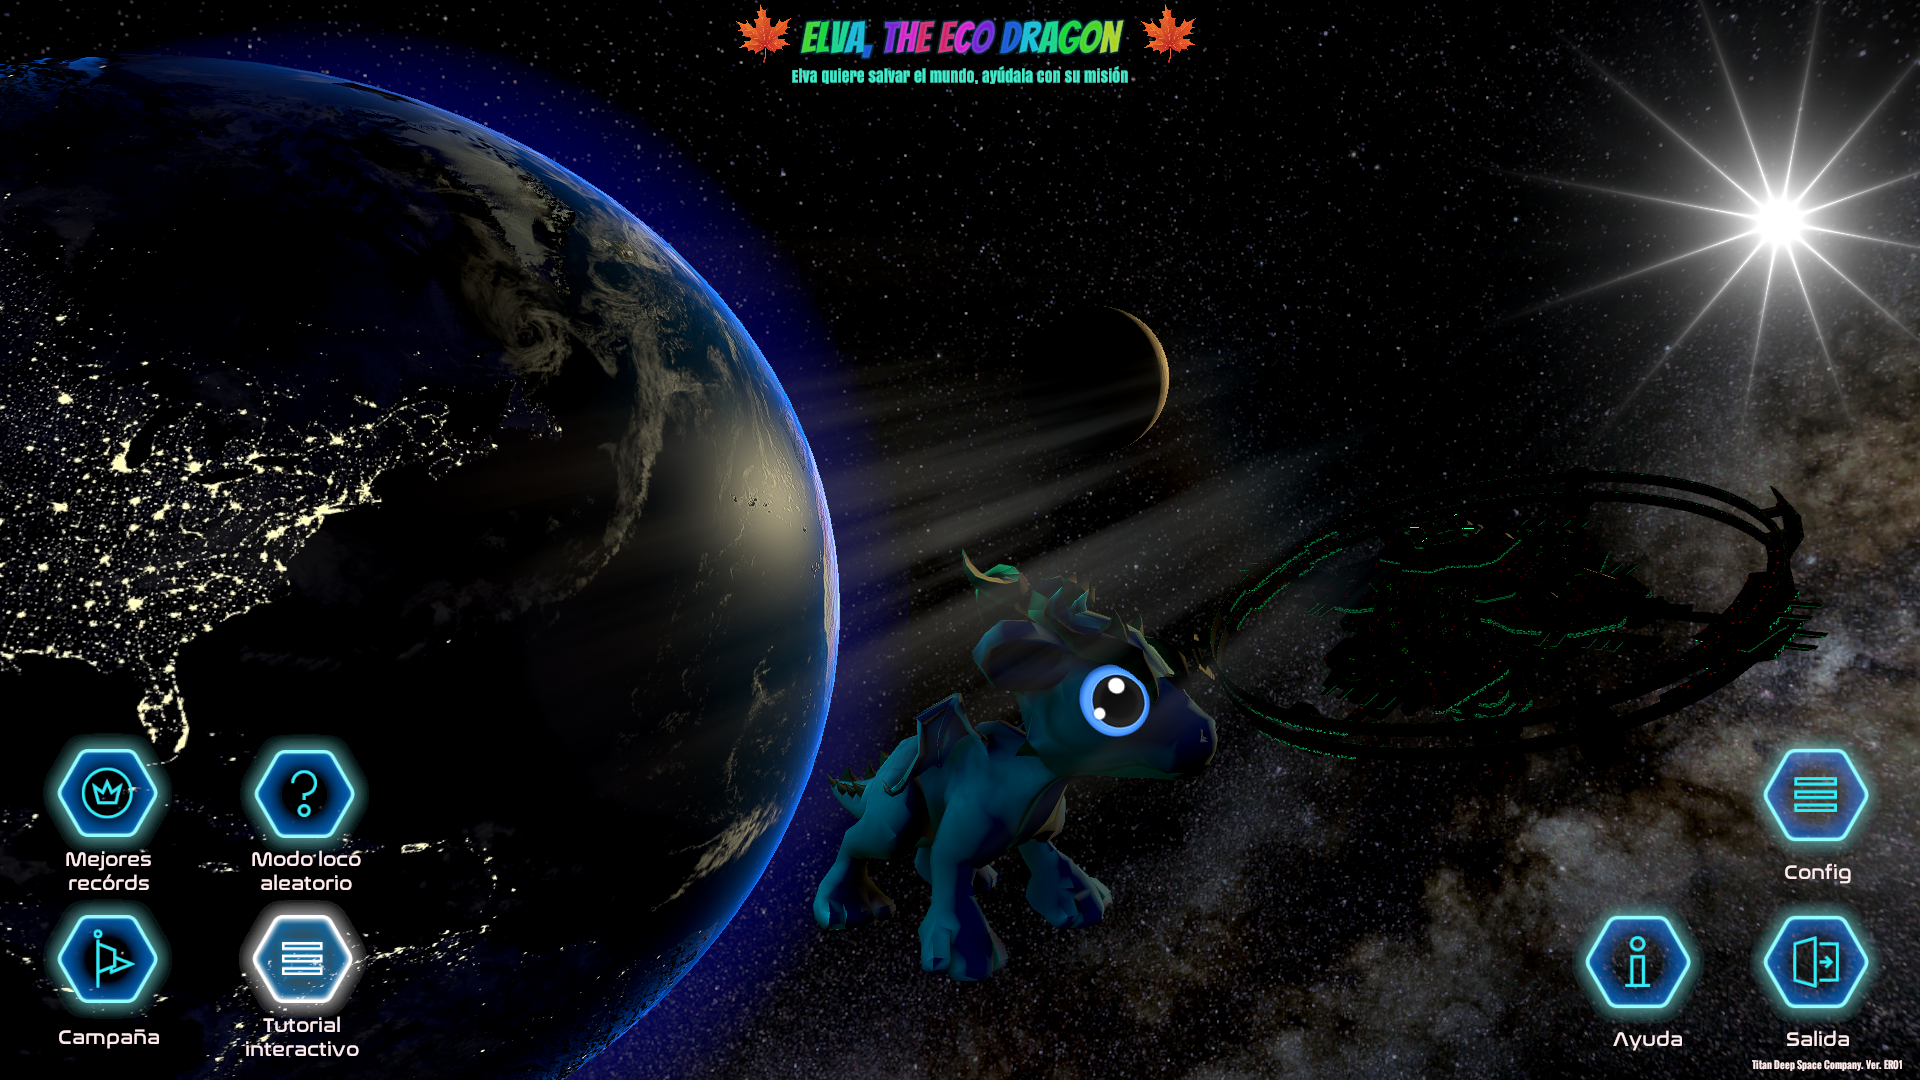 Elva The Eco Dragon 02_05_2020 11_12_45